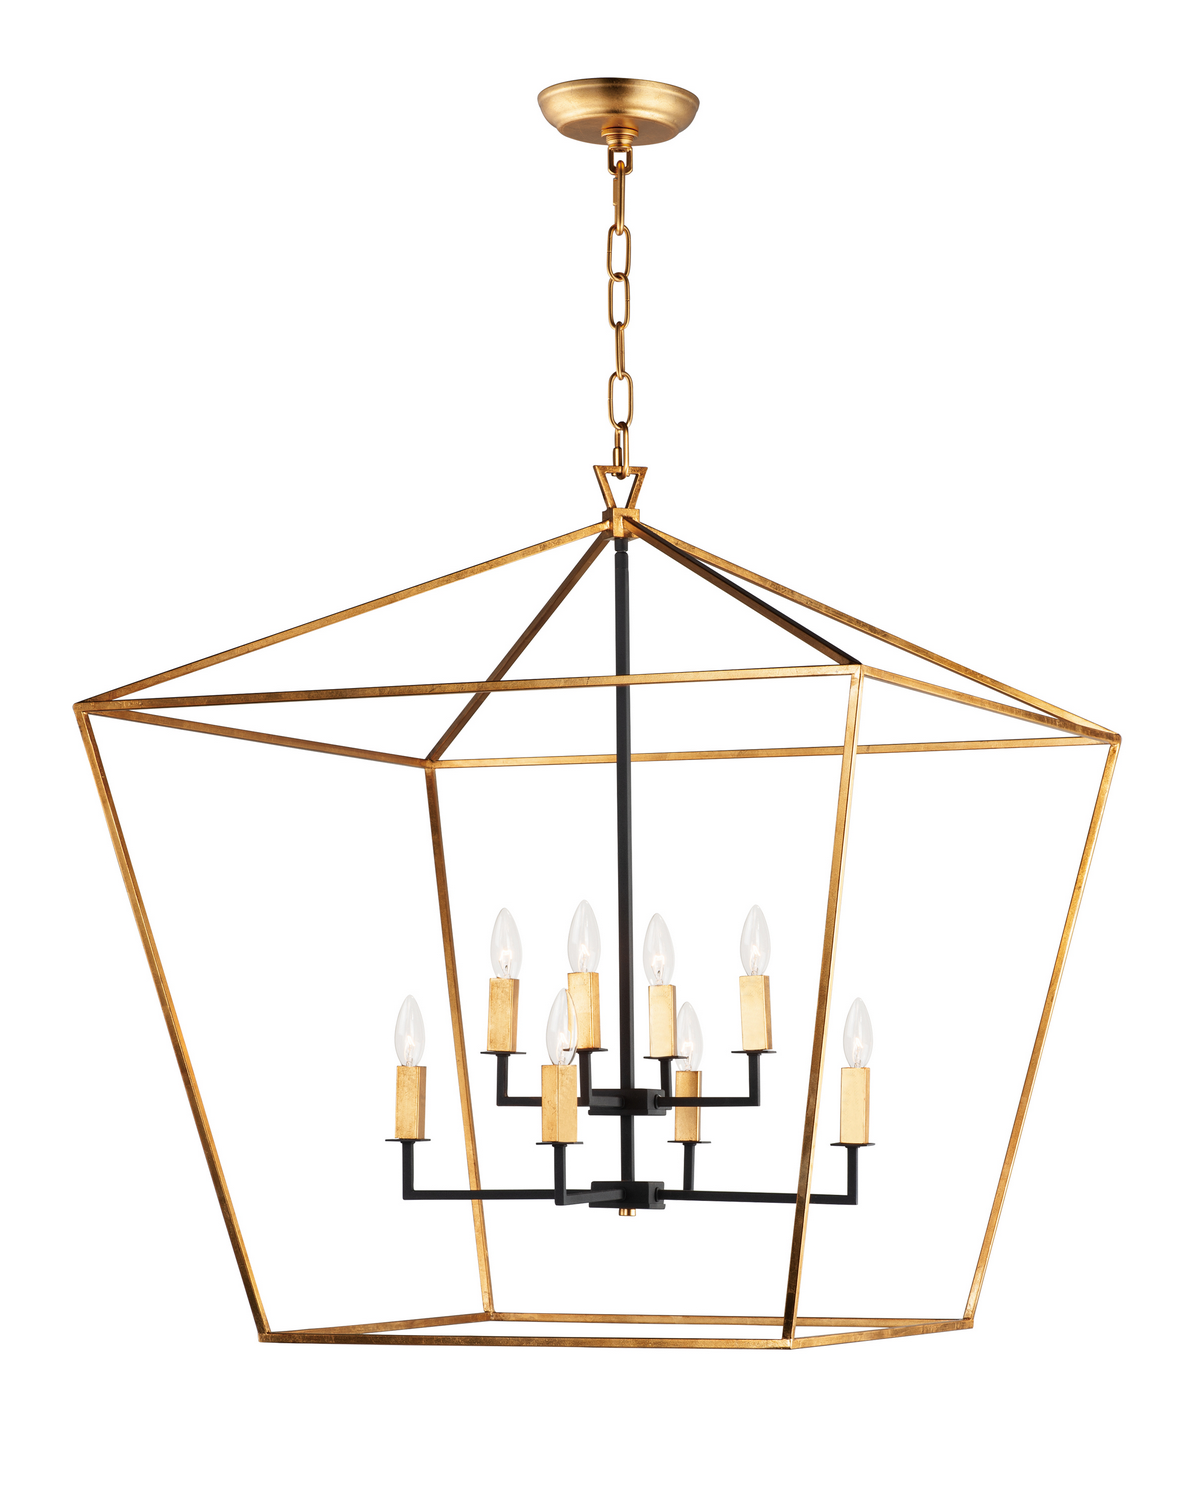 Eight Light Chandelier from the Abode collection by Maxim 25154GLTXB